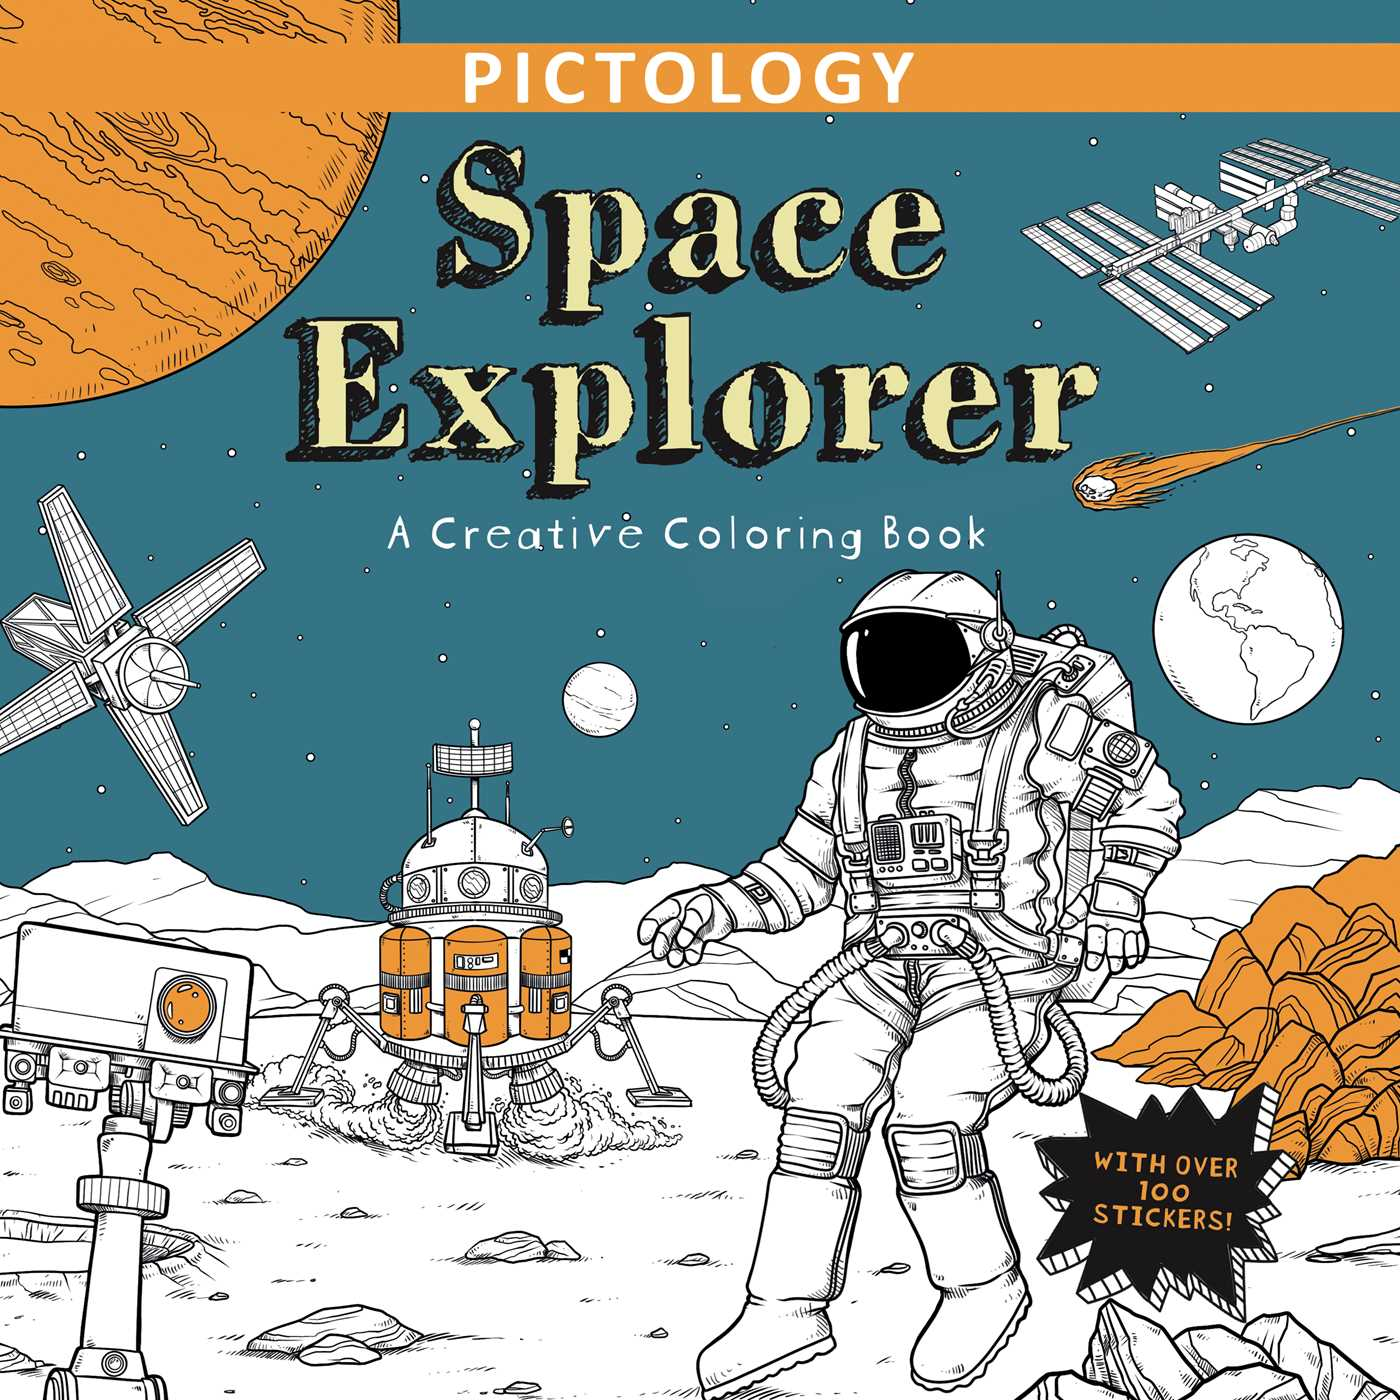 Book Cover Image Jpg Space Explorer